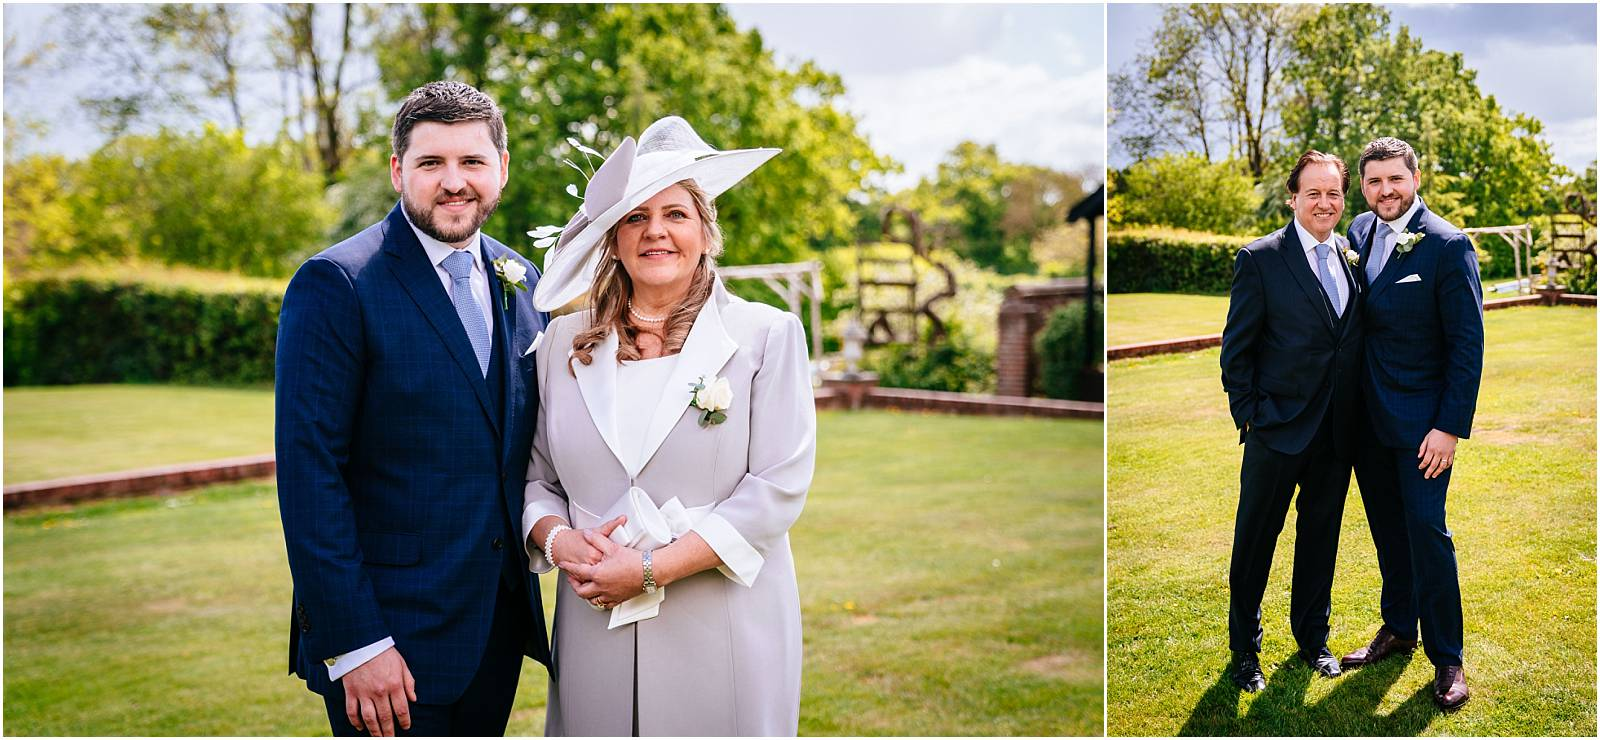 family photos at micklefield hall wedding